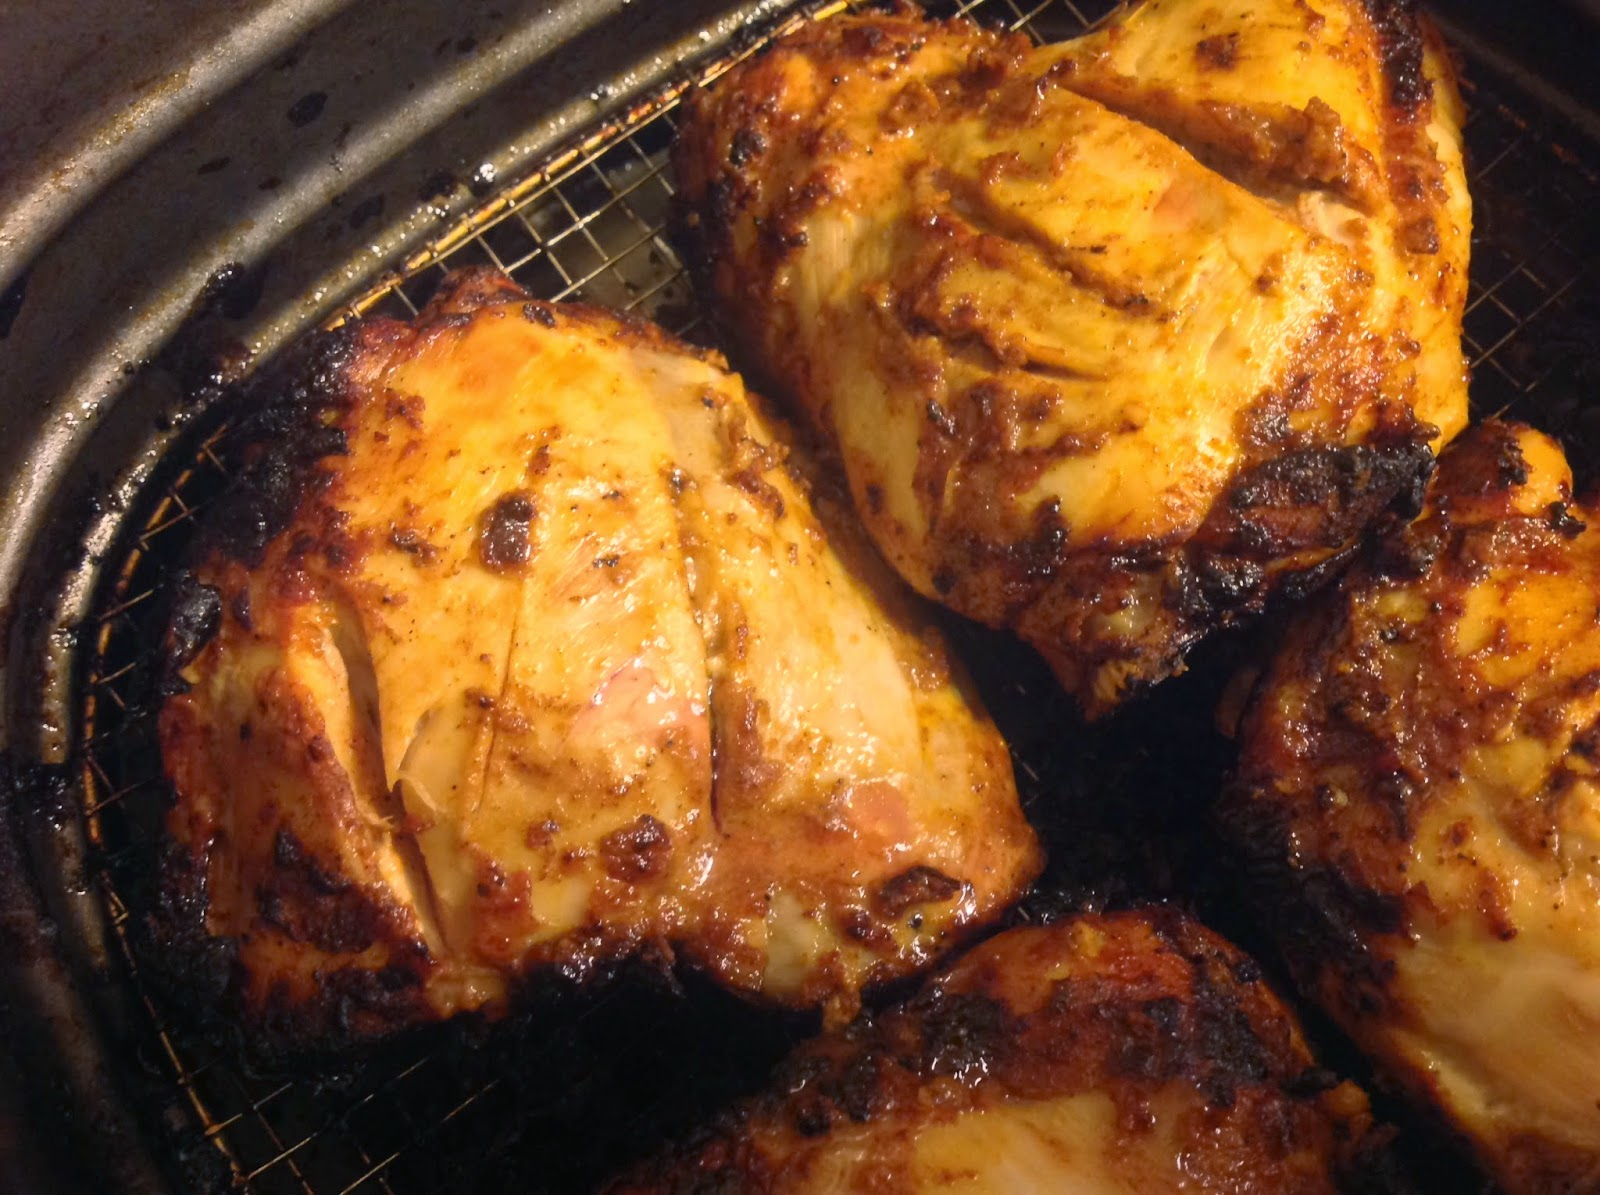 Bake a mania tandoori chicken in the philips airfryer tandoori chicken the very name of the dish starts making my mouth water a huge favorite of everyone in our family this is one dish all of us insanely forumfinder Gallery